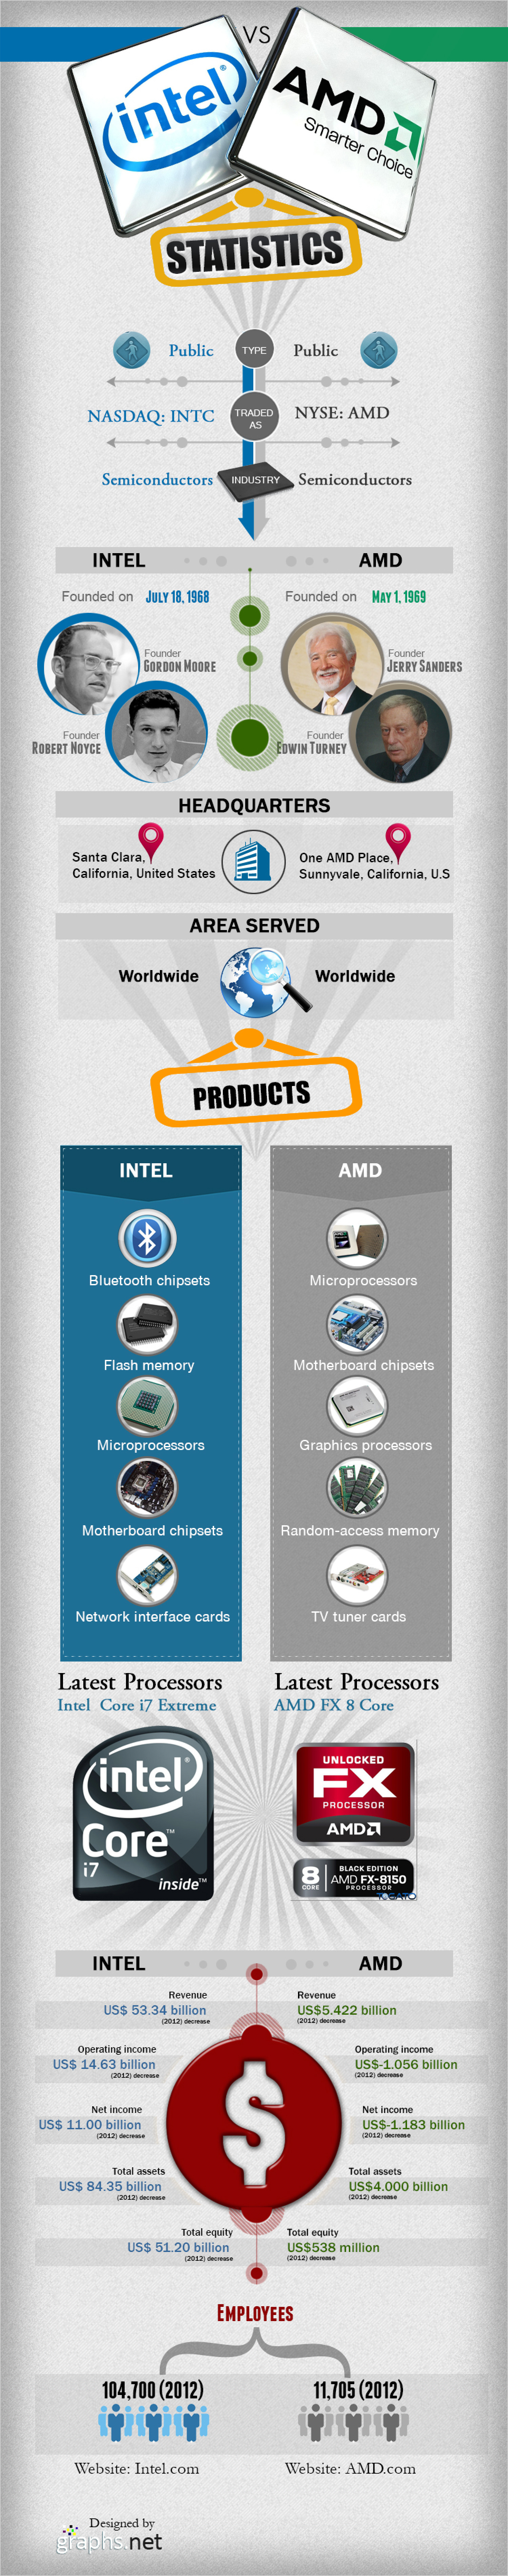 Intel Vs AMD Infographic